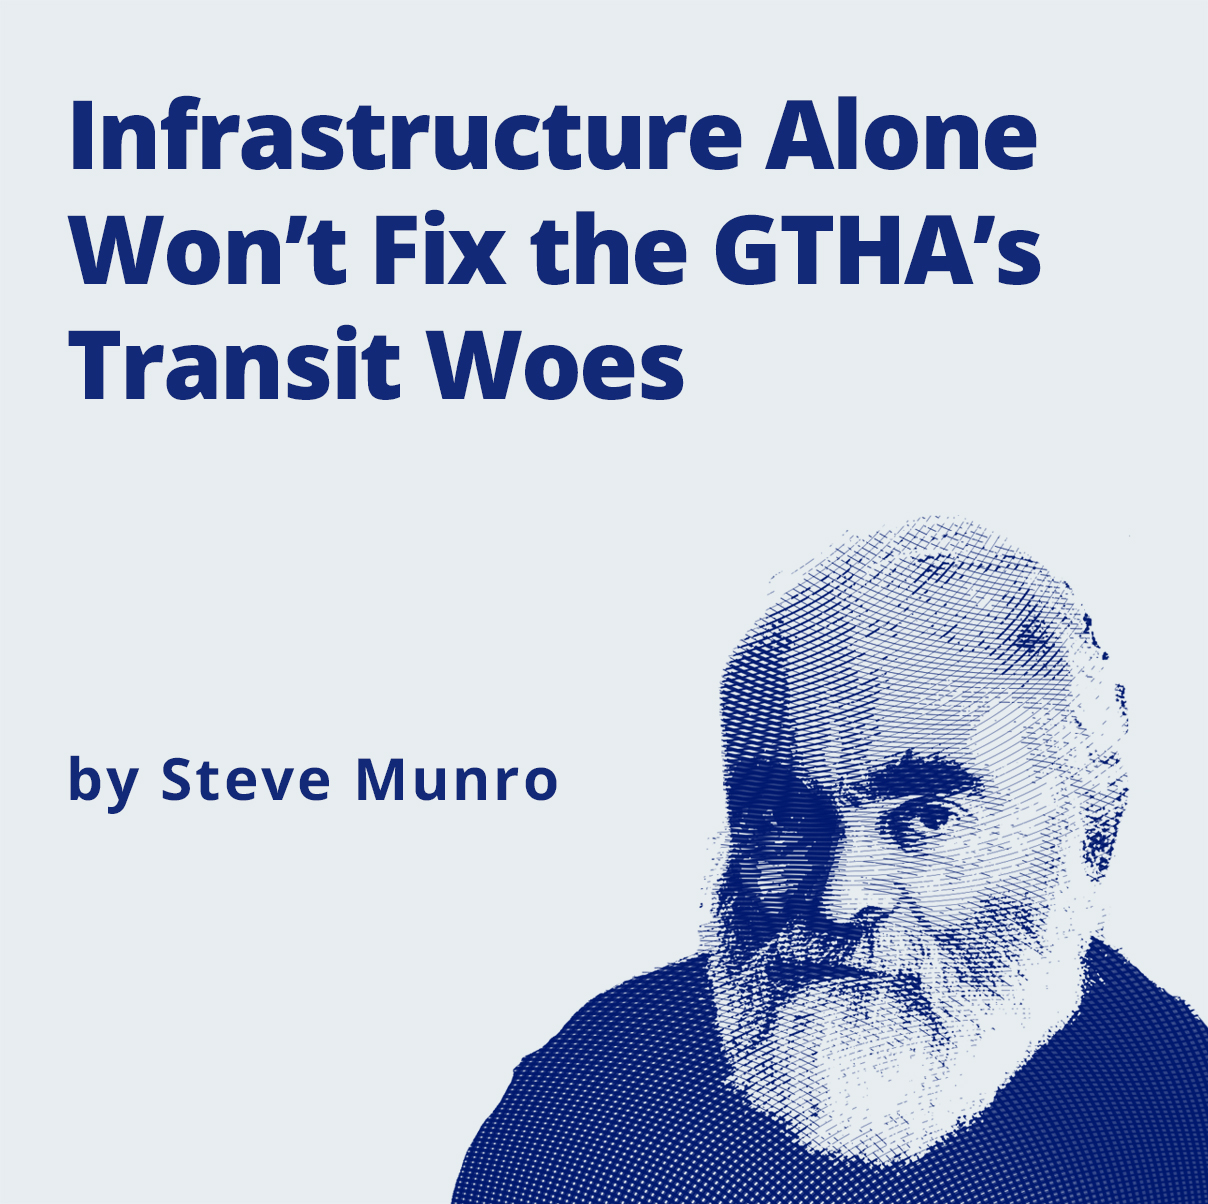 image -  Infrastructure Alone Won't Fix the GTHA's Transit Woes by Steve Munro